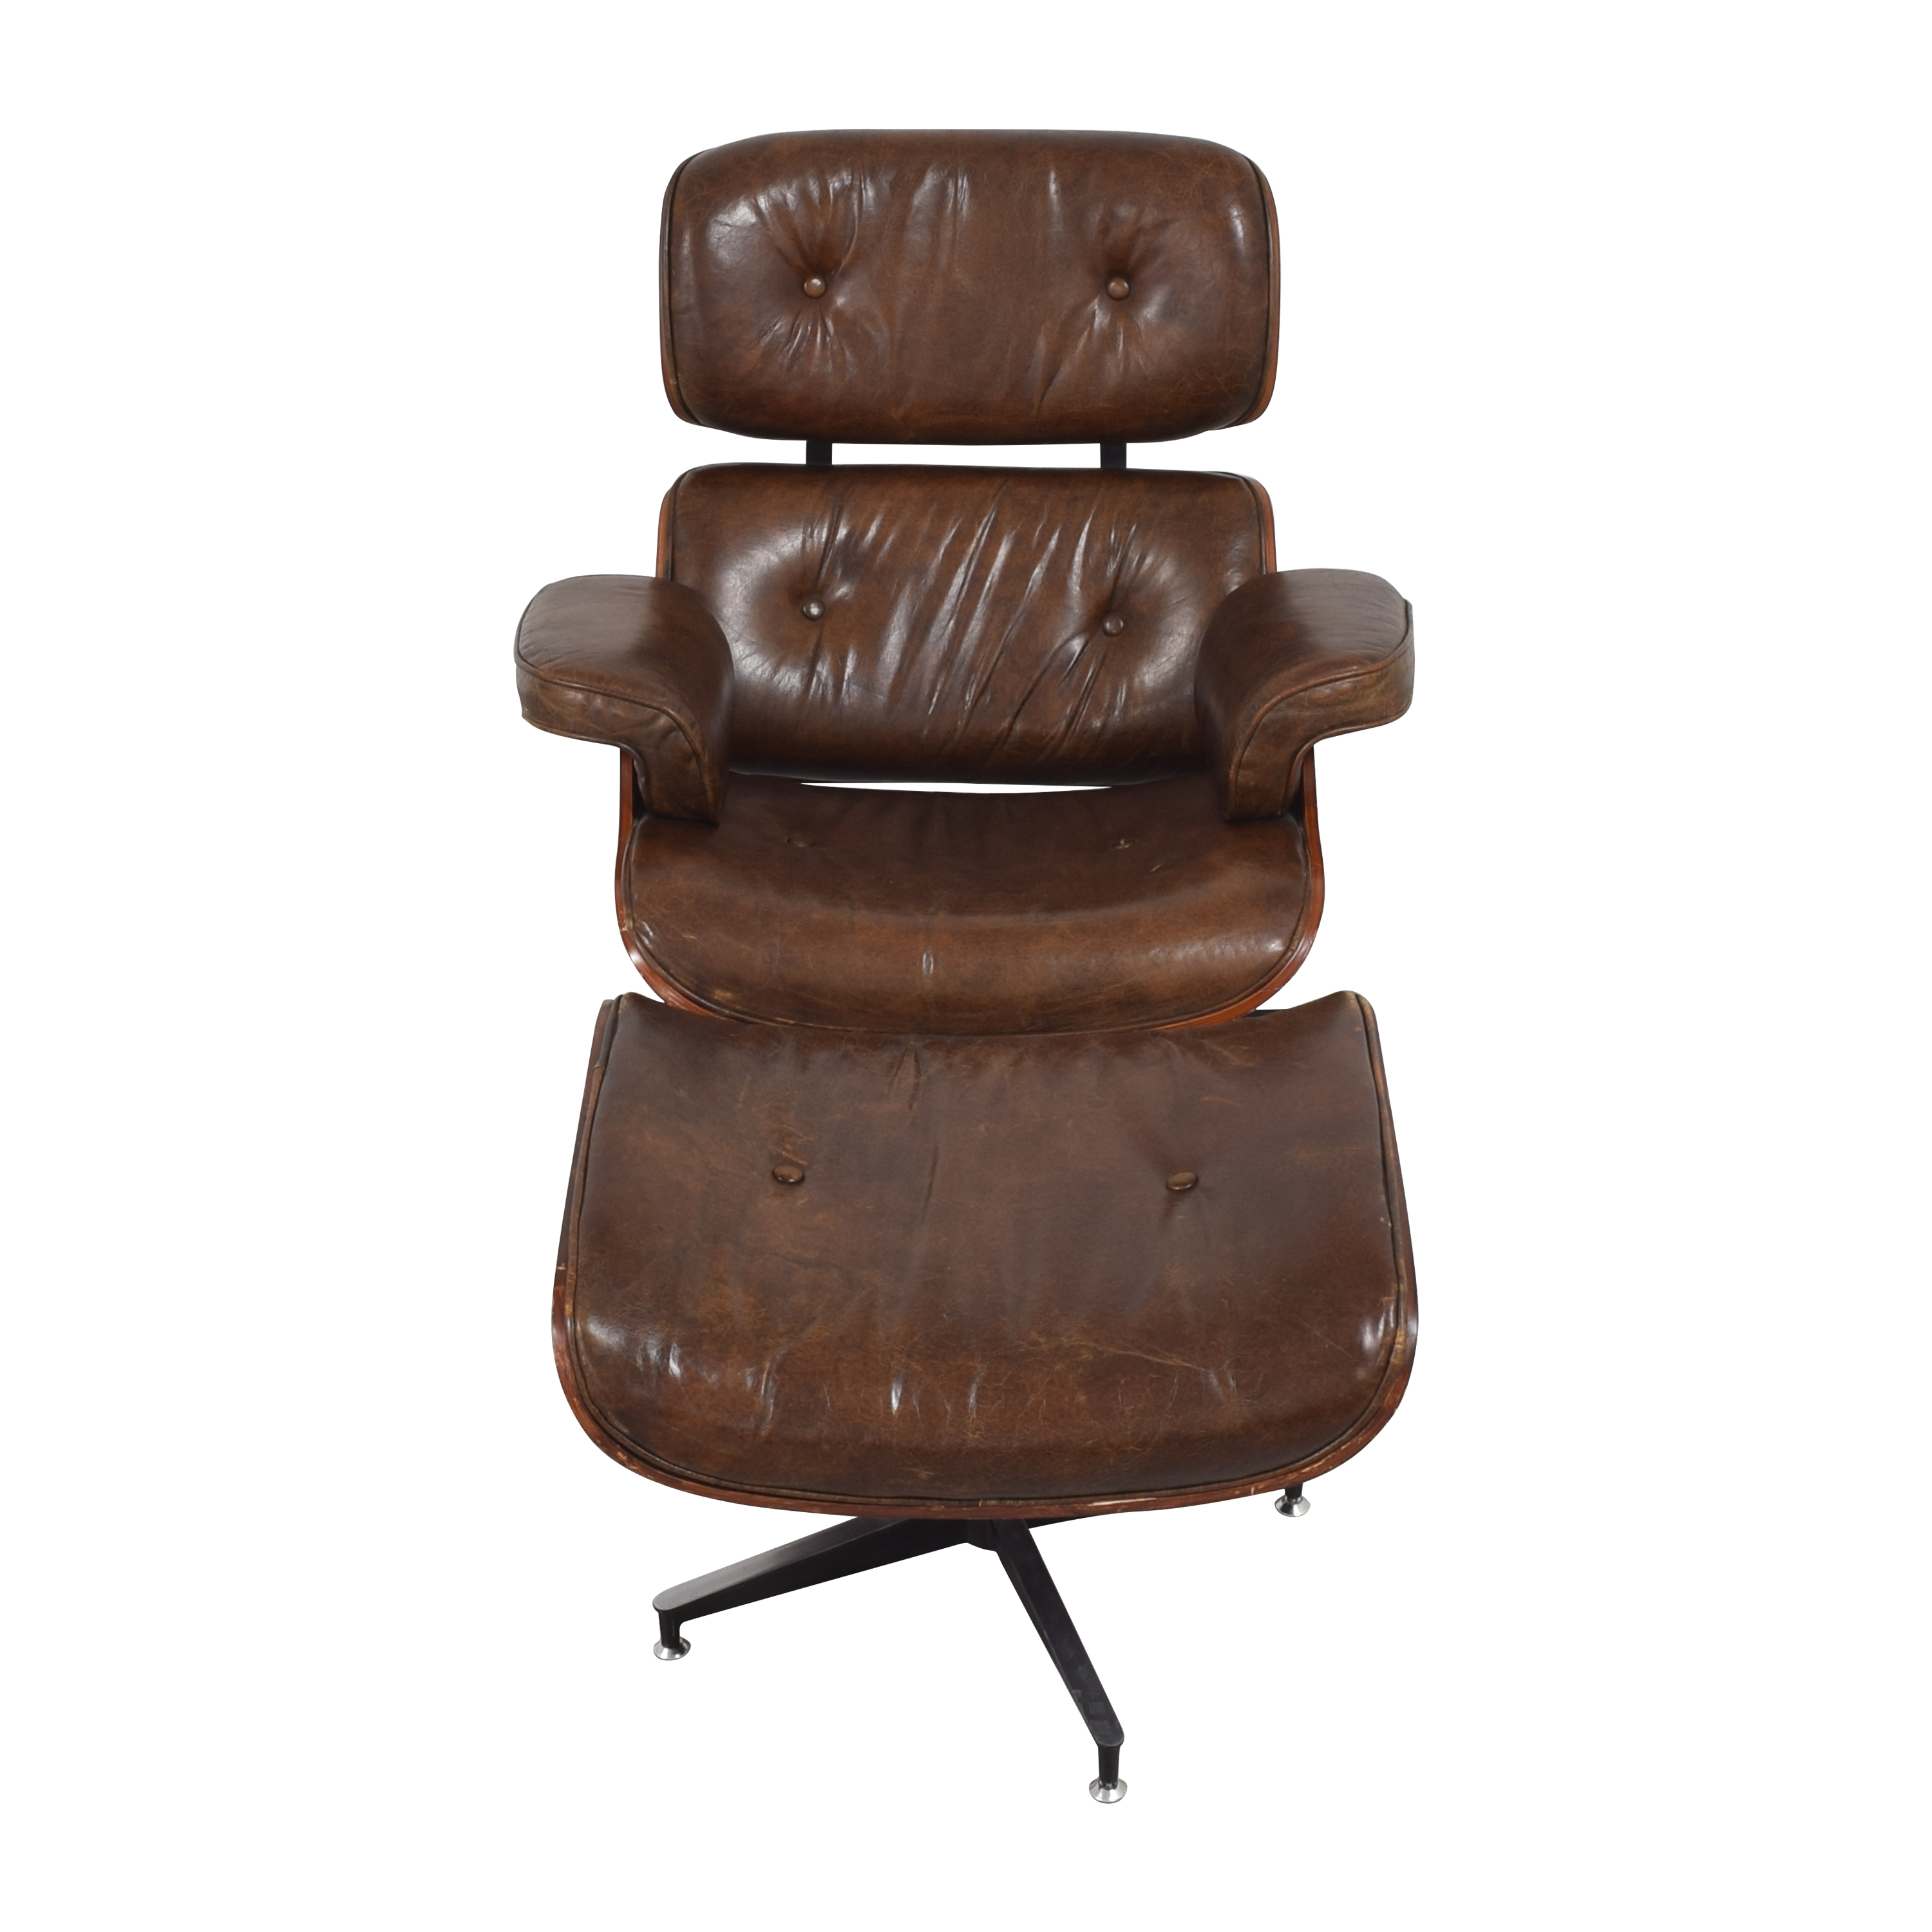 Eames-Style Chair with Ottoman nj